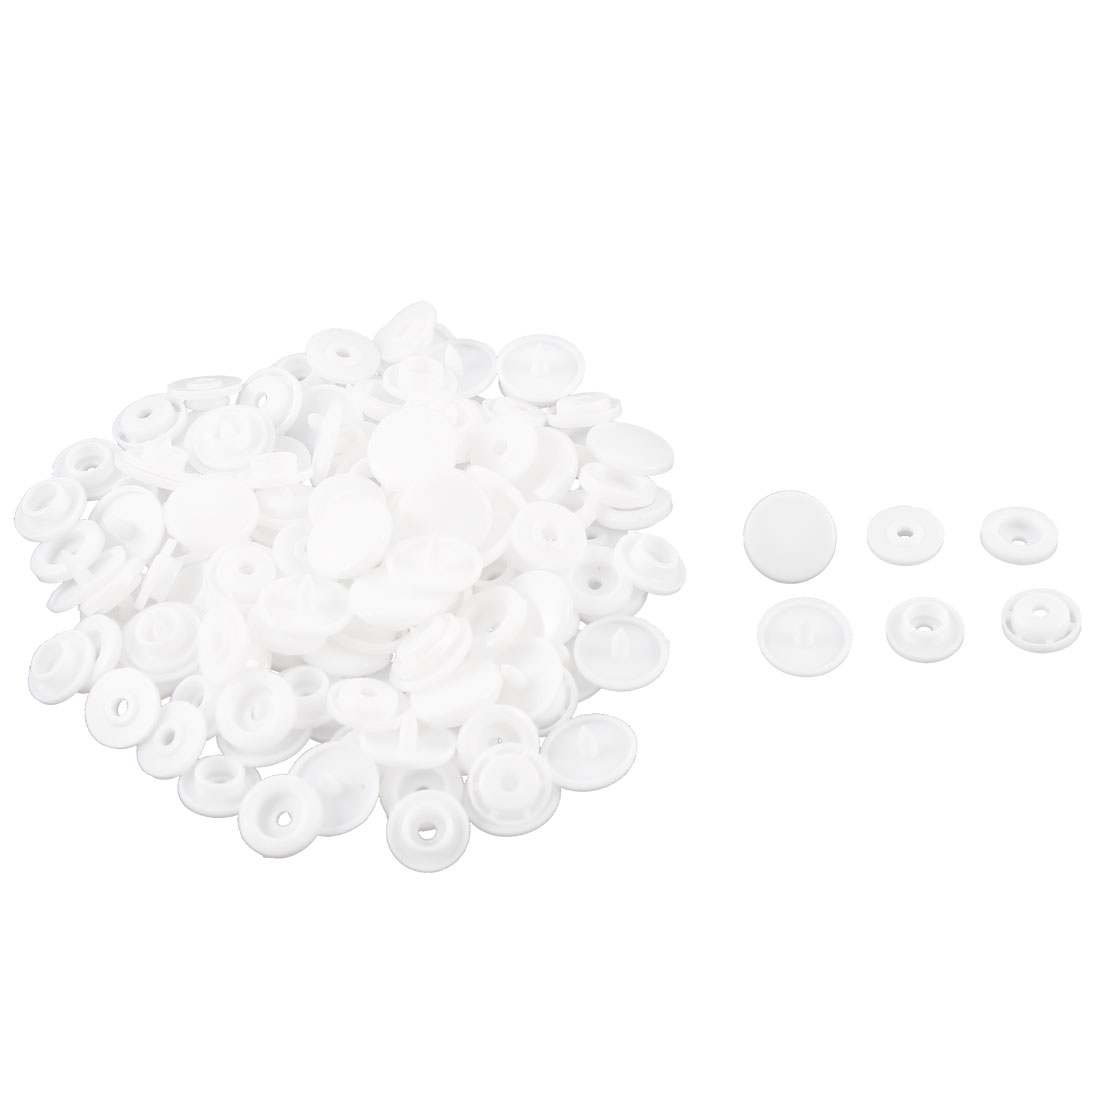 50 Pcs White Sewing Poppers Snap Press Fastener Buttons 1.2cm Diameter